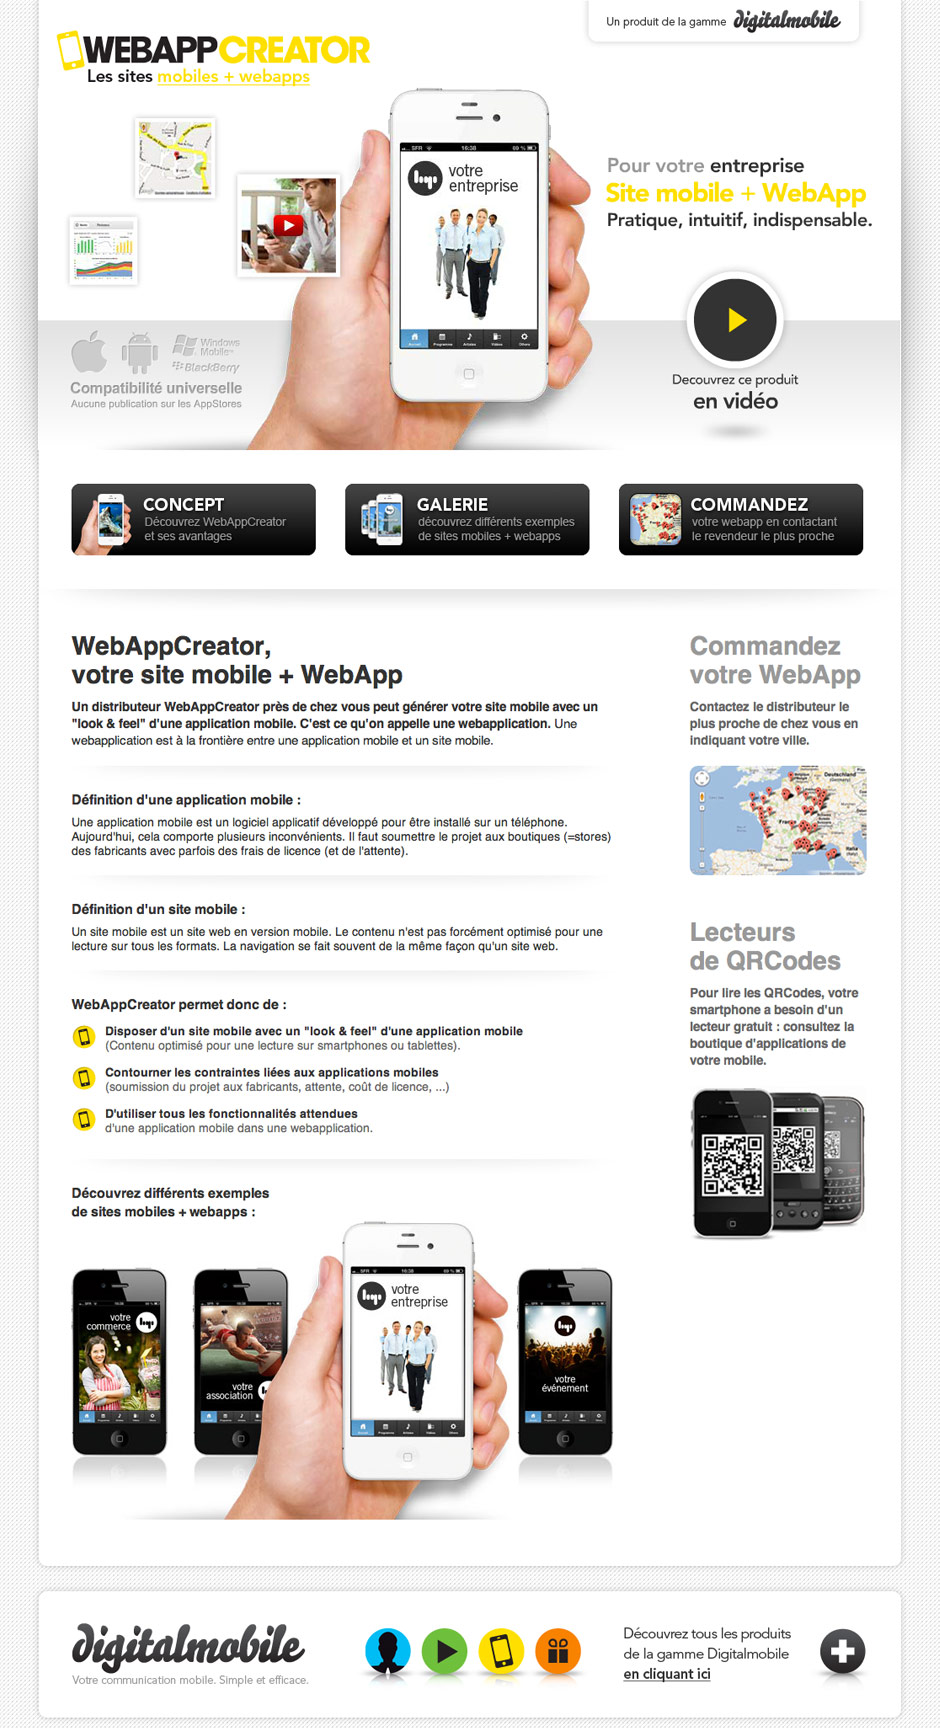 graphiste-montpellier-creation-exaprint-webappcreator-agence-communication-montpellier-caconcept-alexis-cretin-5